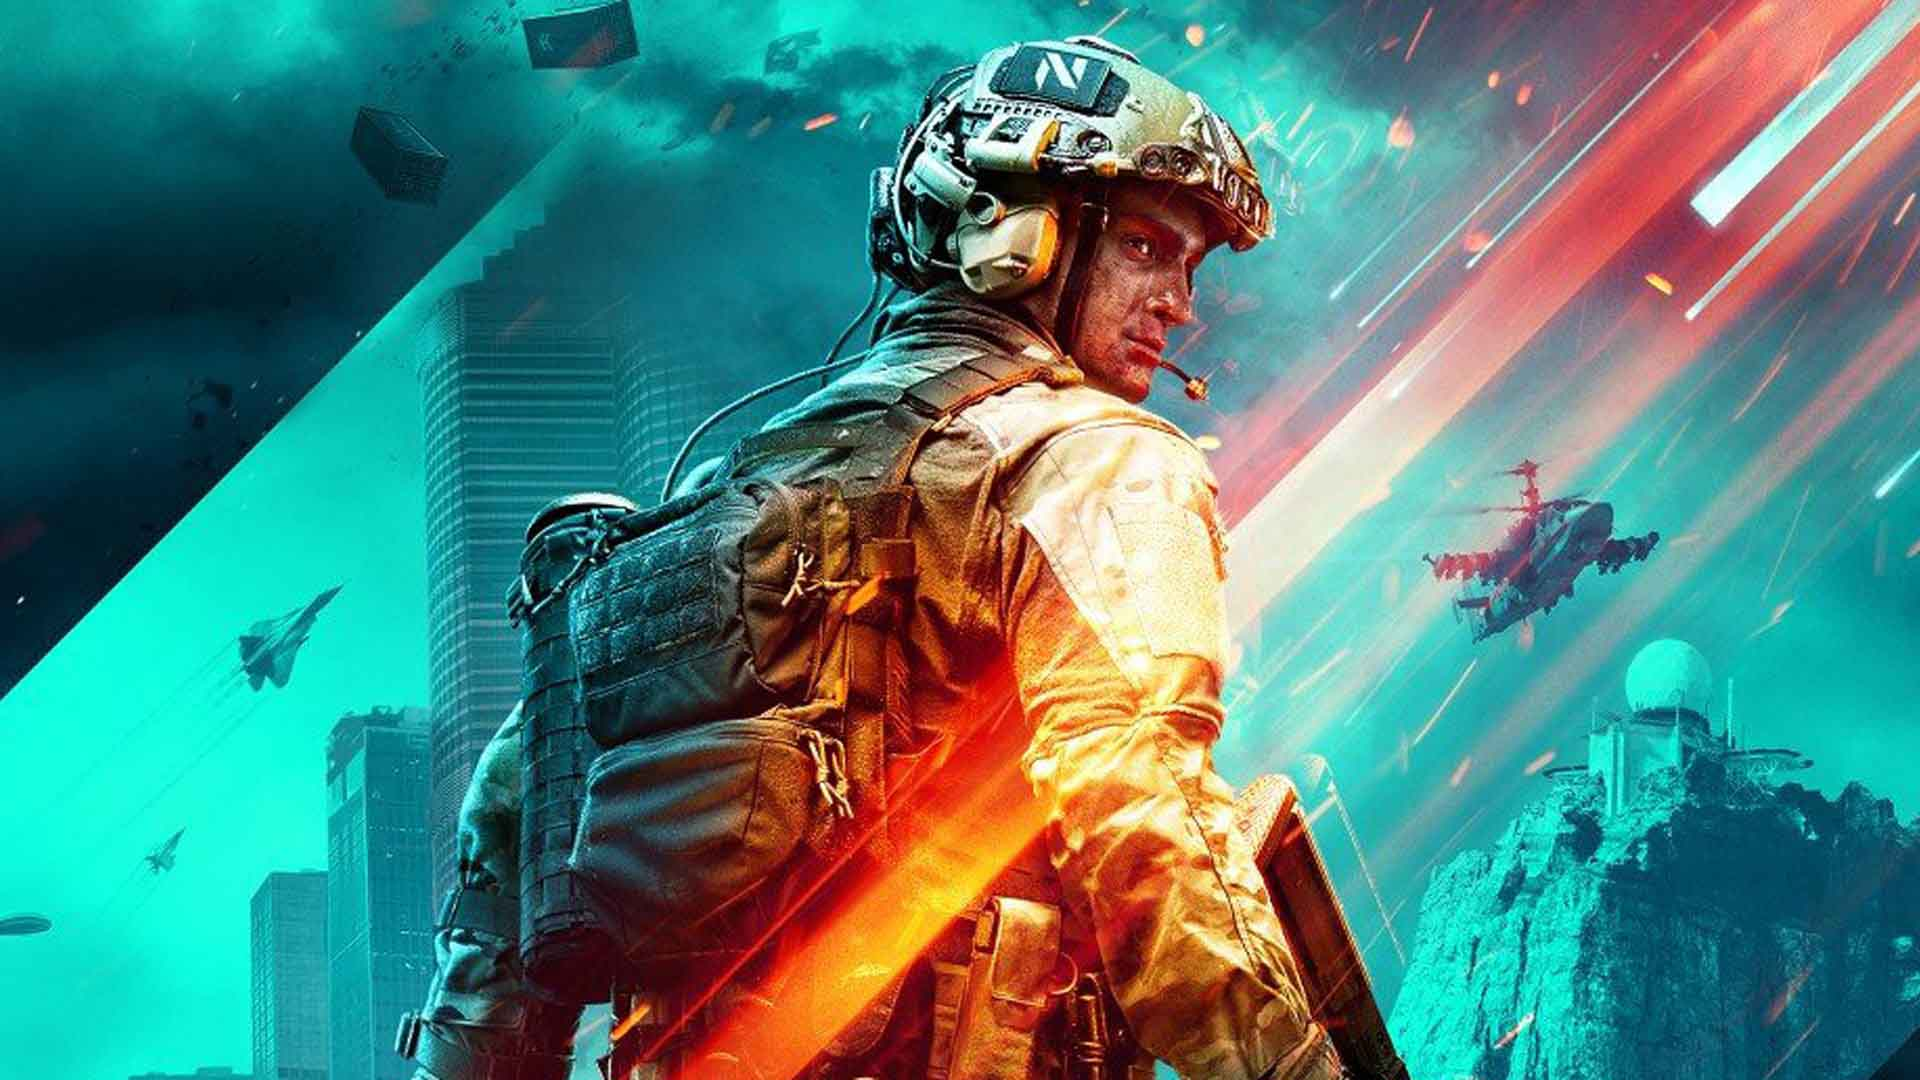 How is this cross-play in Battlefield 2042? PS4 and XOne owners are unlikely to be satisfied